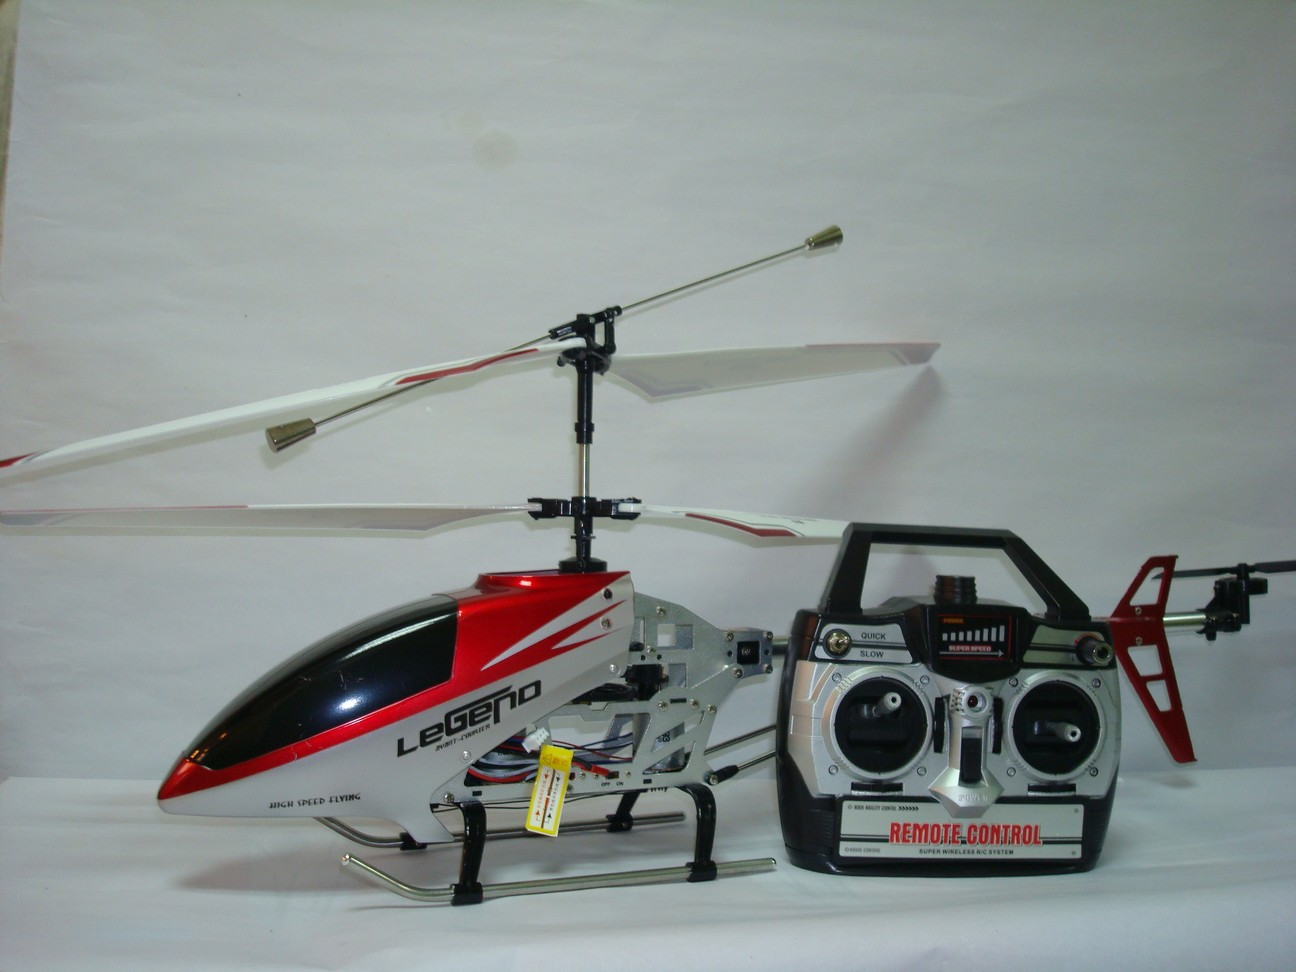 Legend 9050 rc helicopter